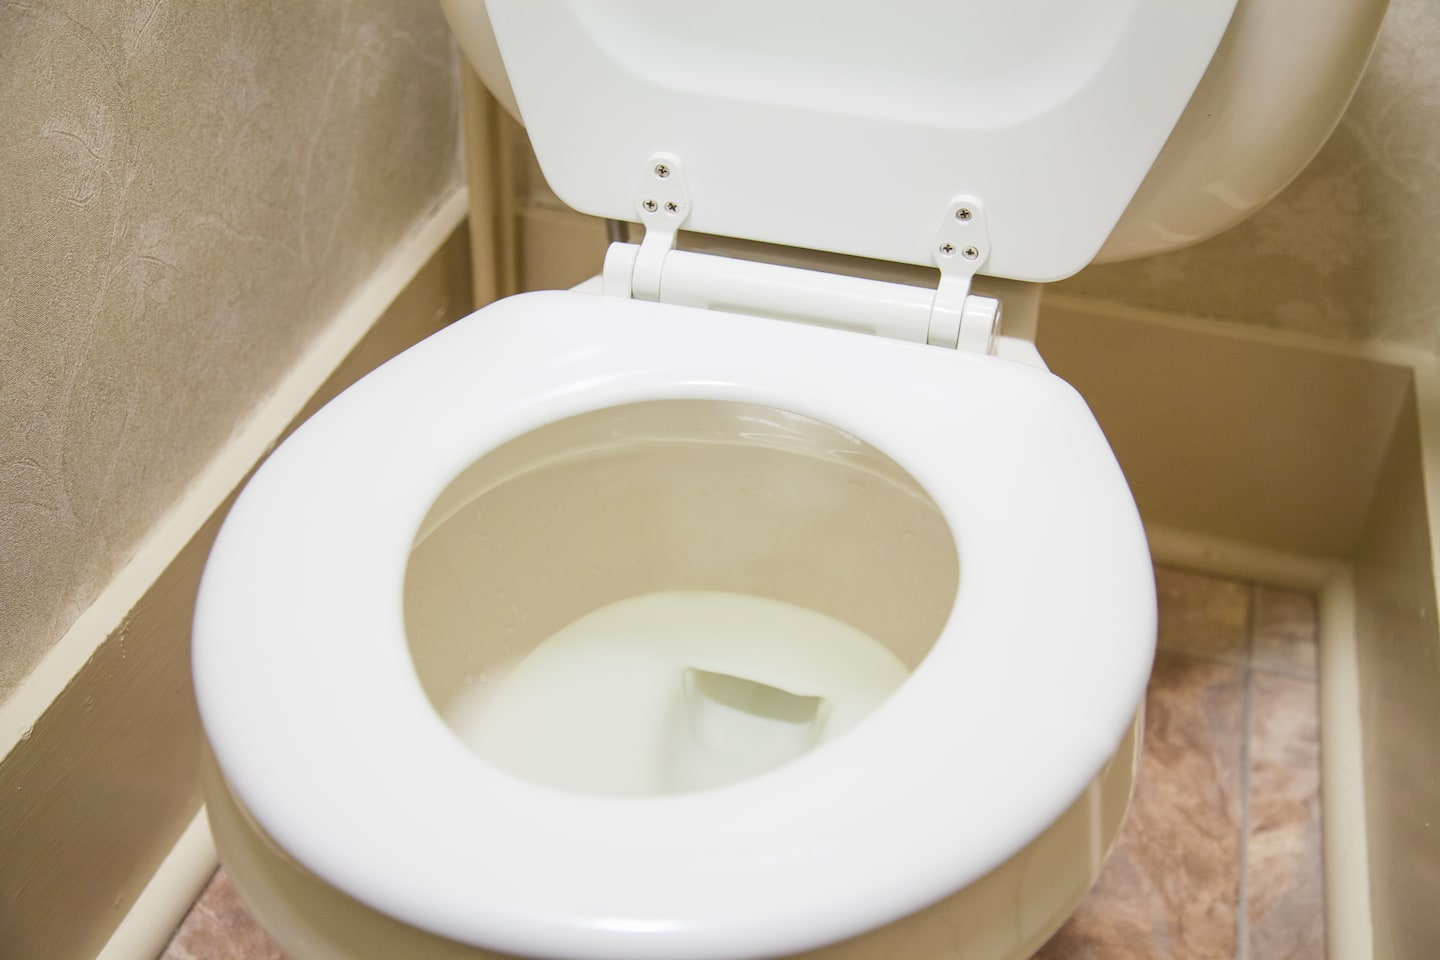 How Much Does it Cost to Replace a Toilet Flange? | Angie's List